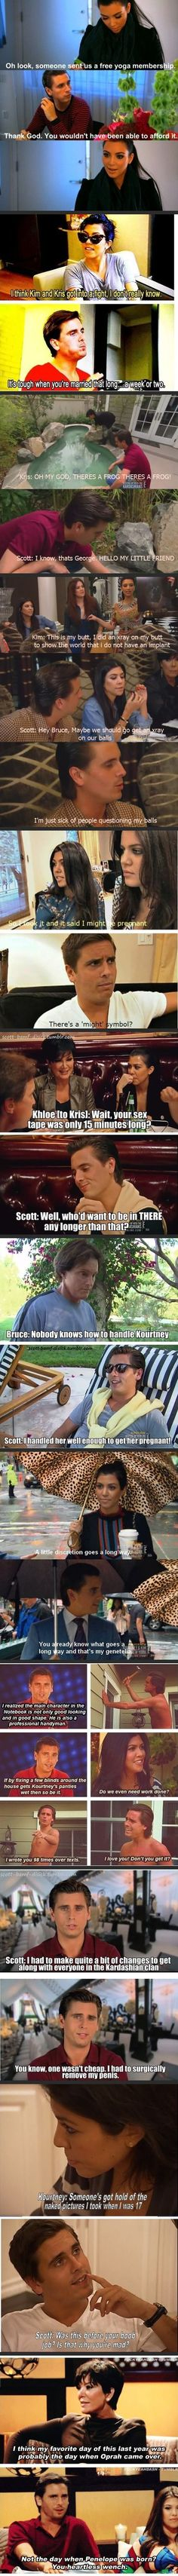 Scott Disick is actually really clever... He's an ass 98% of the time but he's freaking hilarious too!